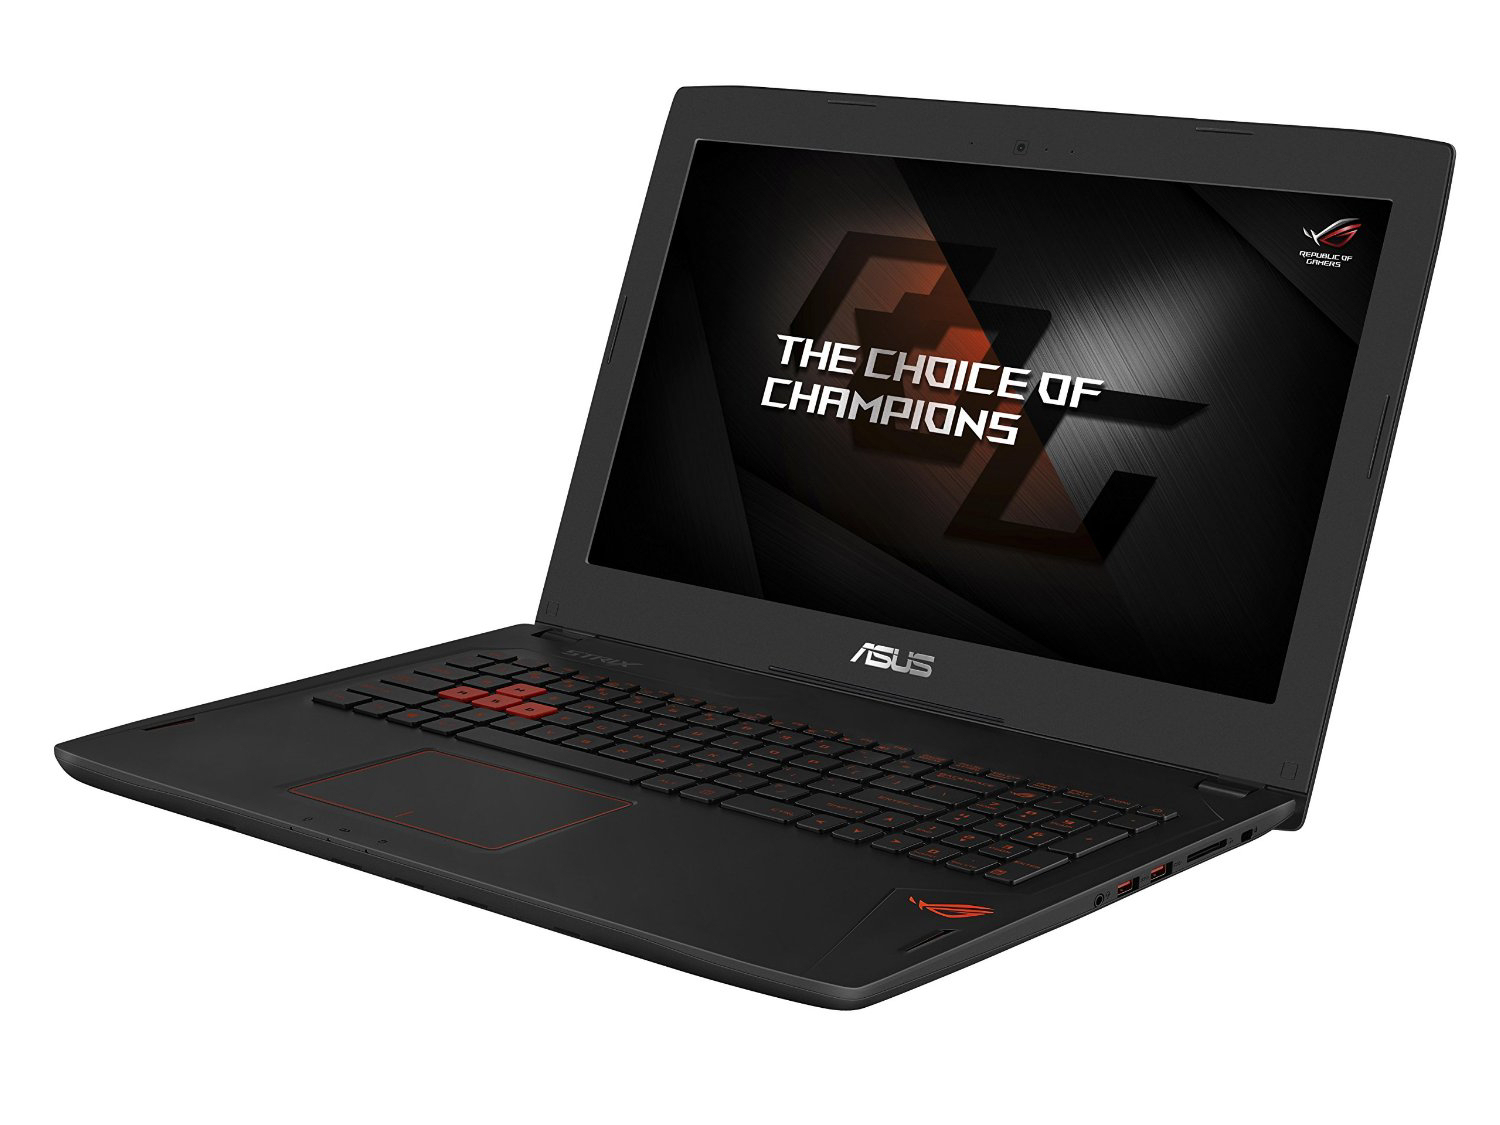 Asus ROG Strix GL502VM Notebook Review - NotebookCheck.net Reviews